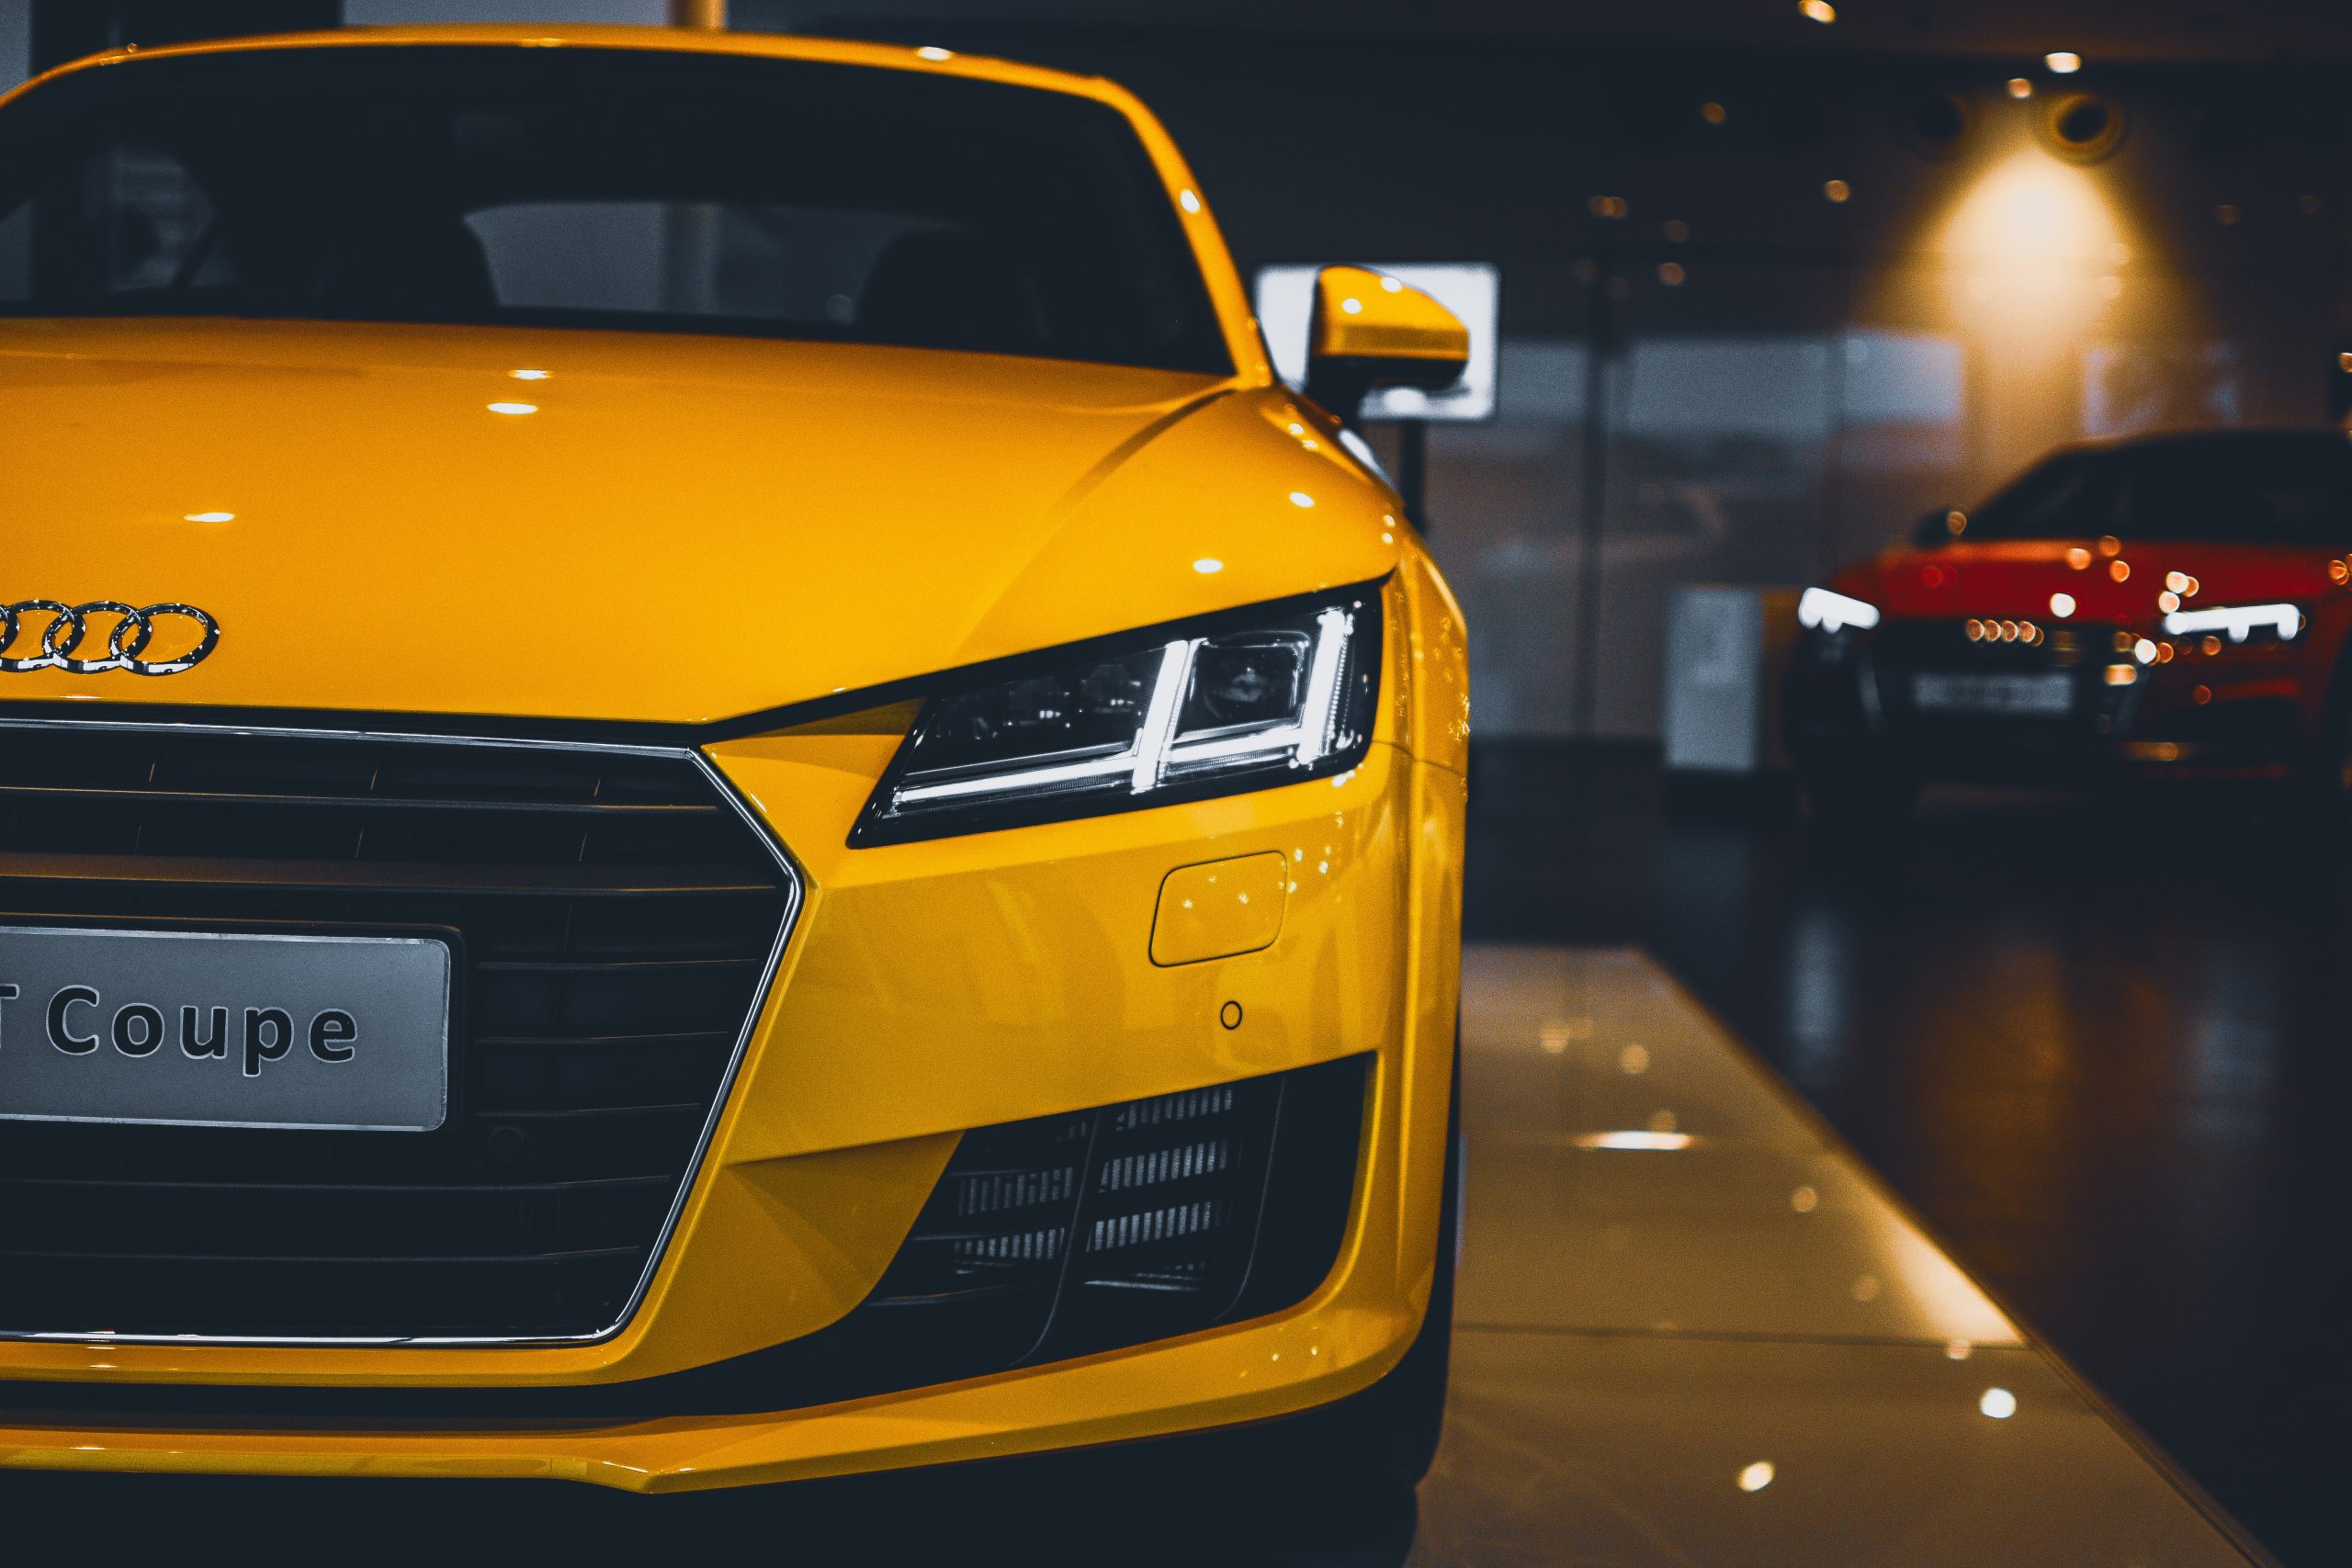 Audi TT yellow super car